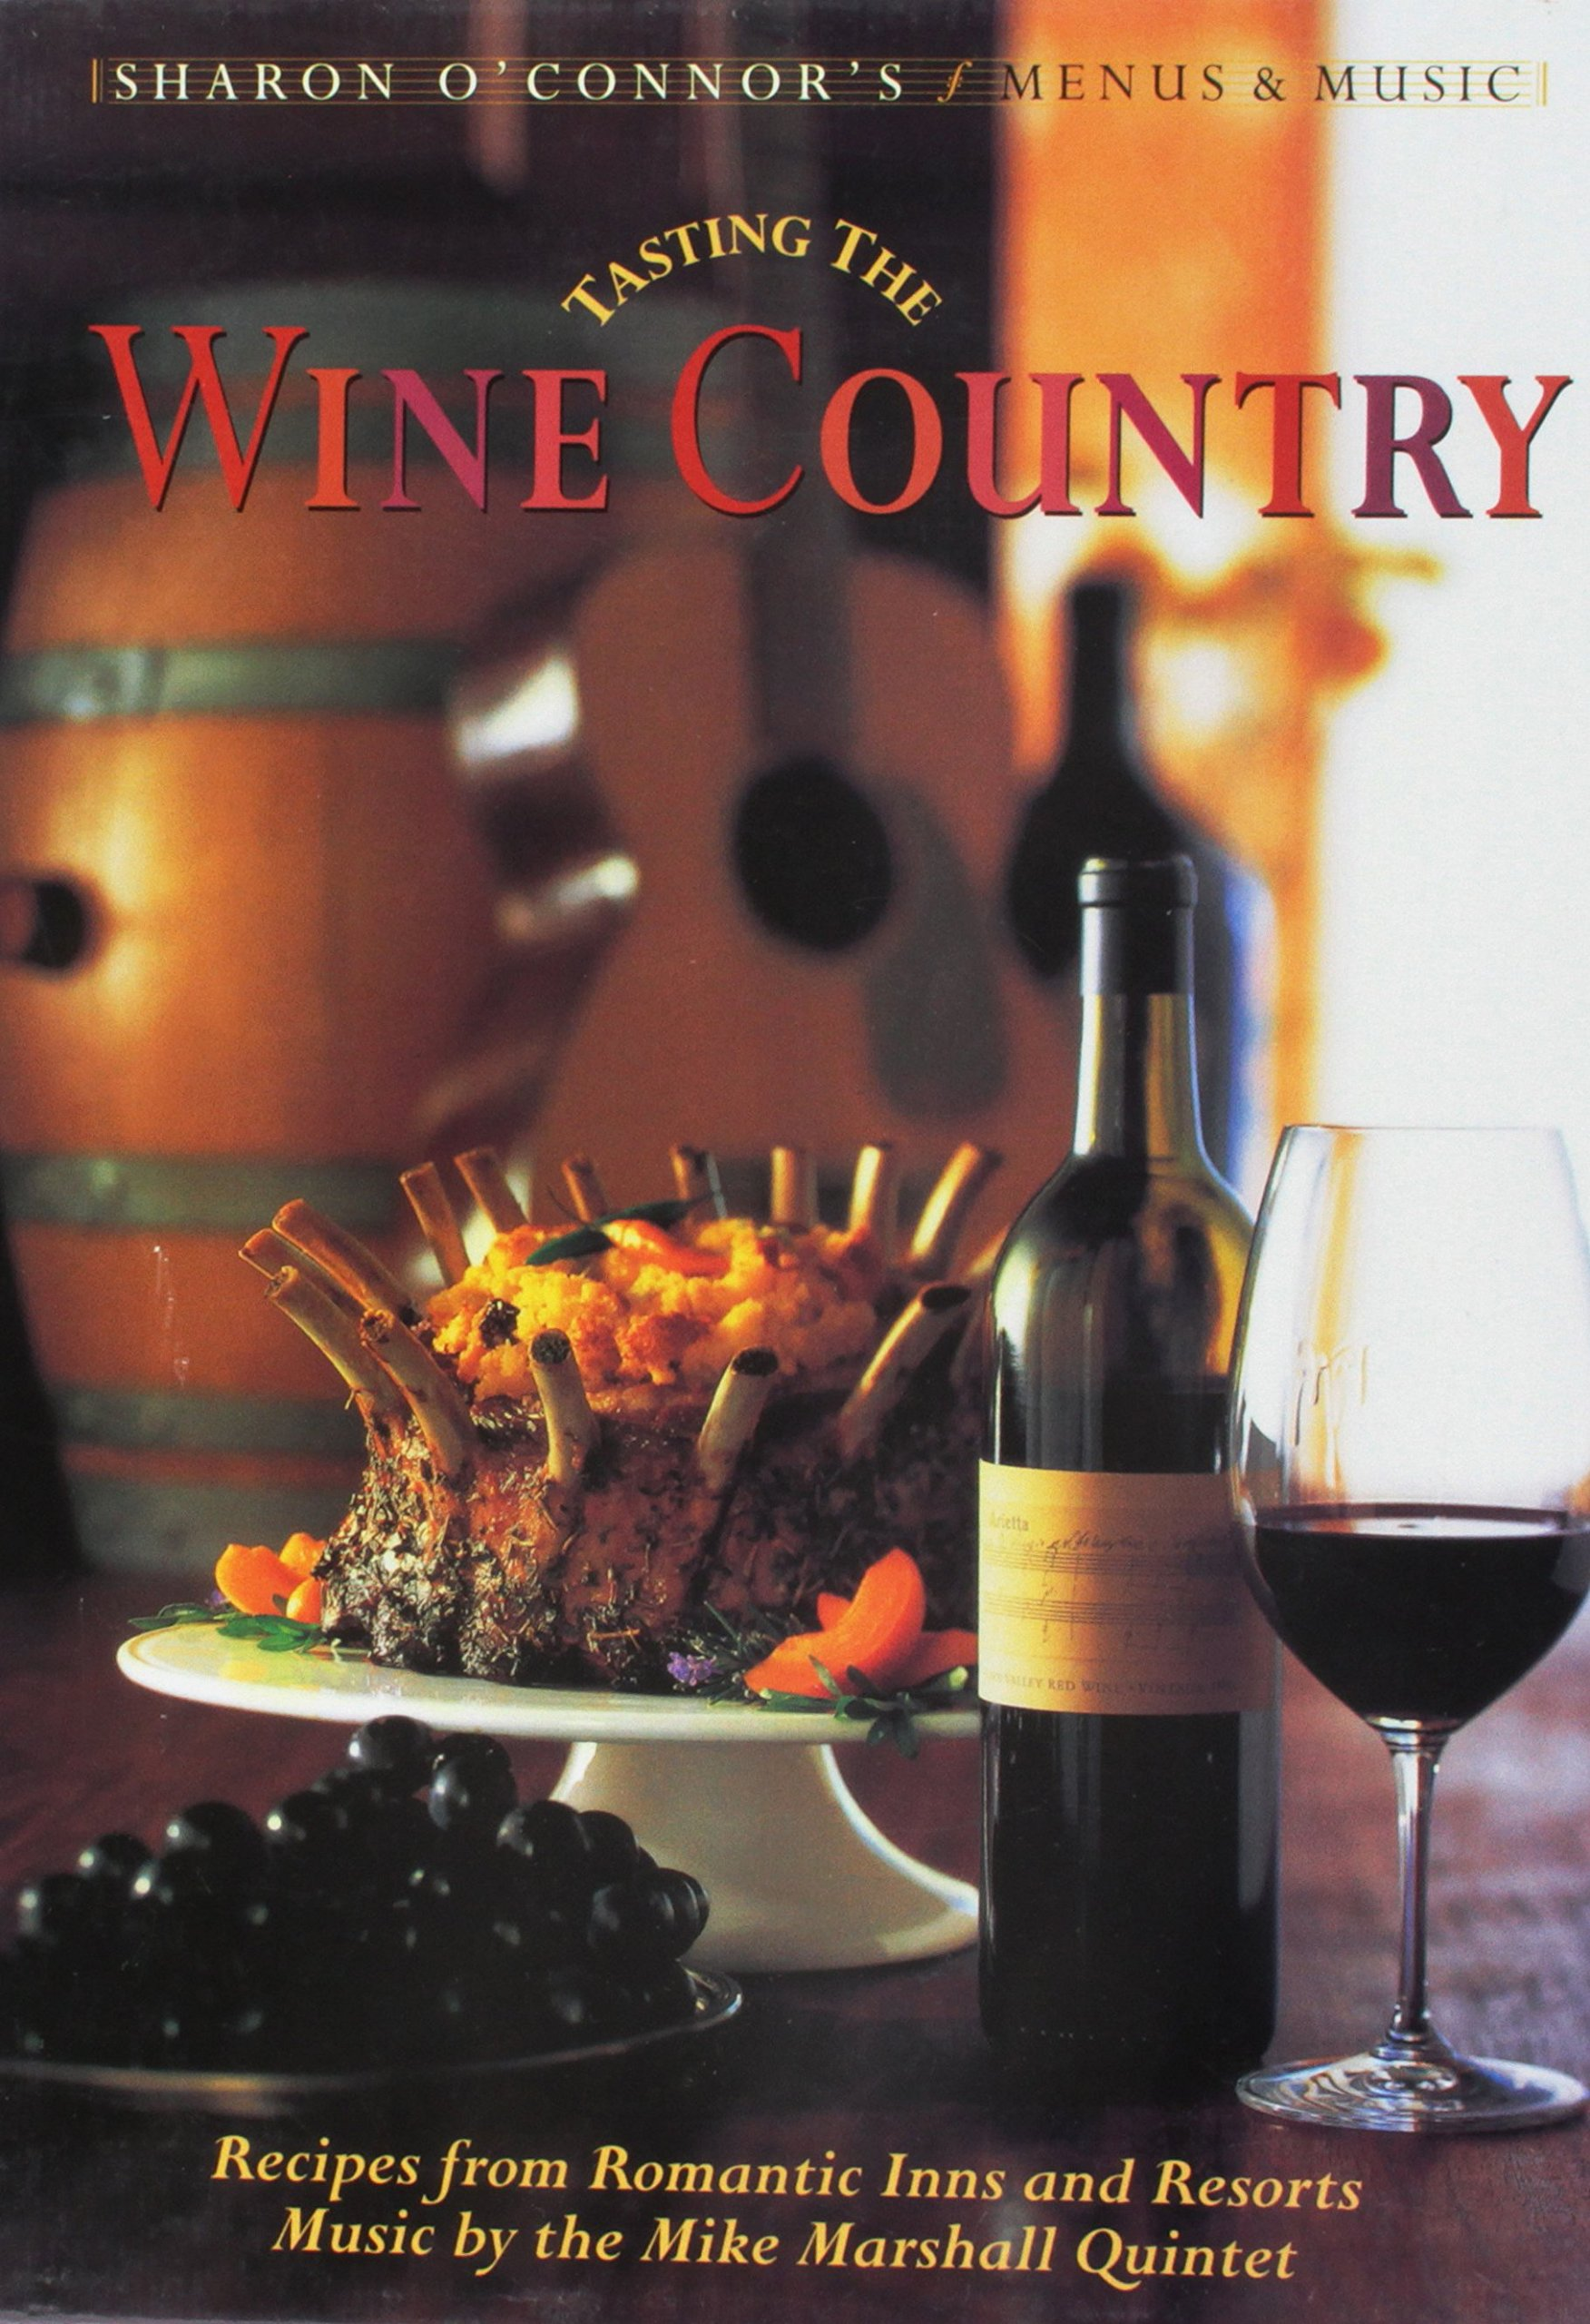 Tasting the Wine Country Menus and Music ® Gift Boxed Set (Menu Book & CD Set): Recipes from Romantic Inns and Resorts